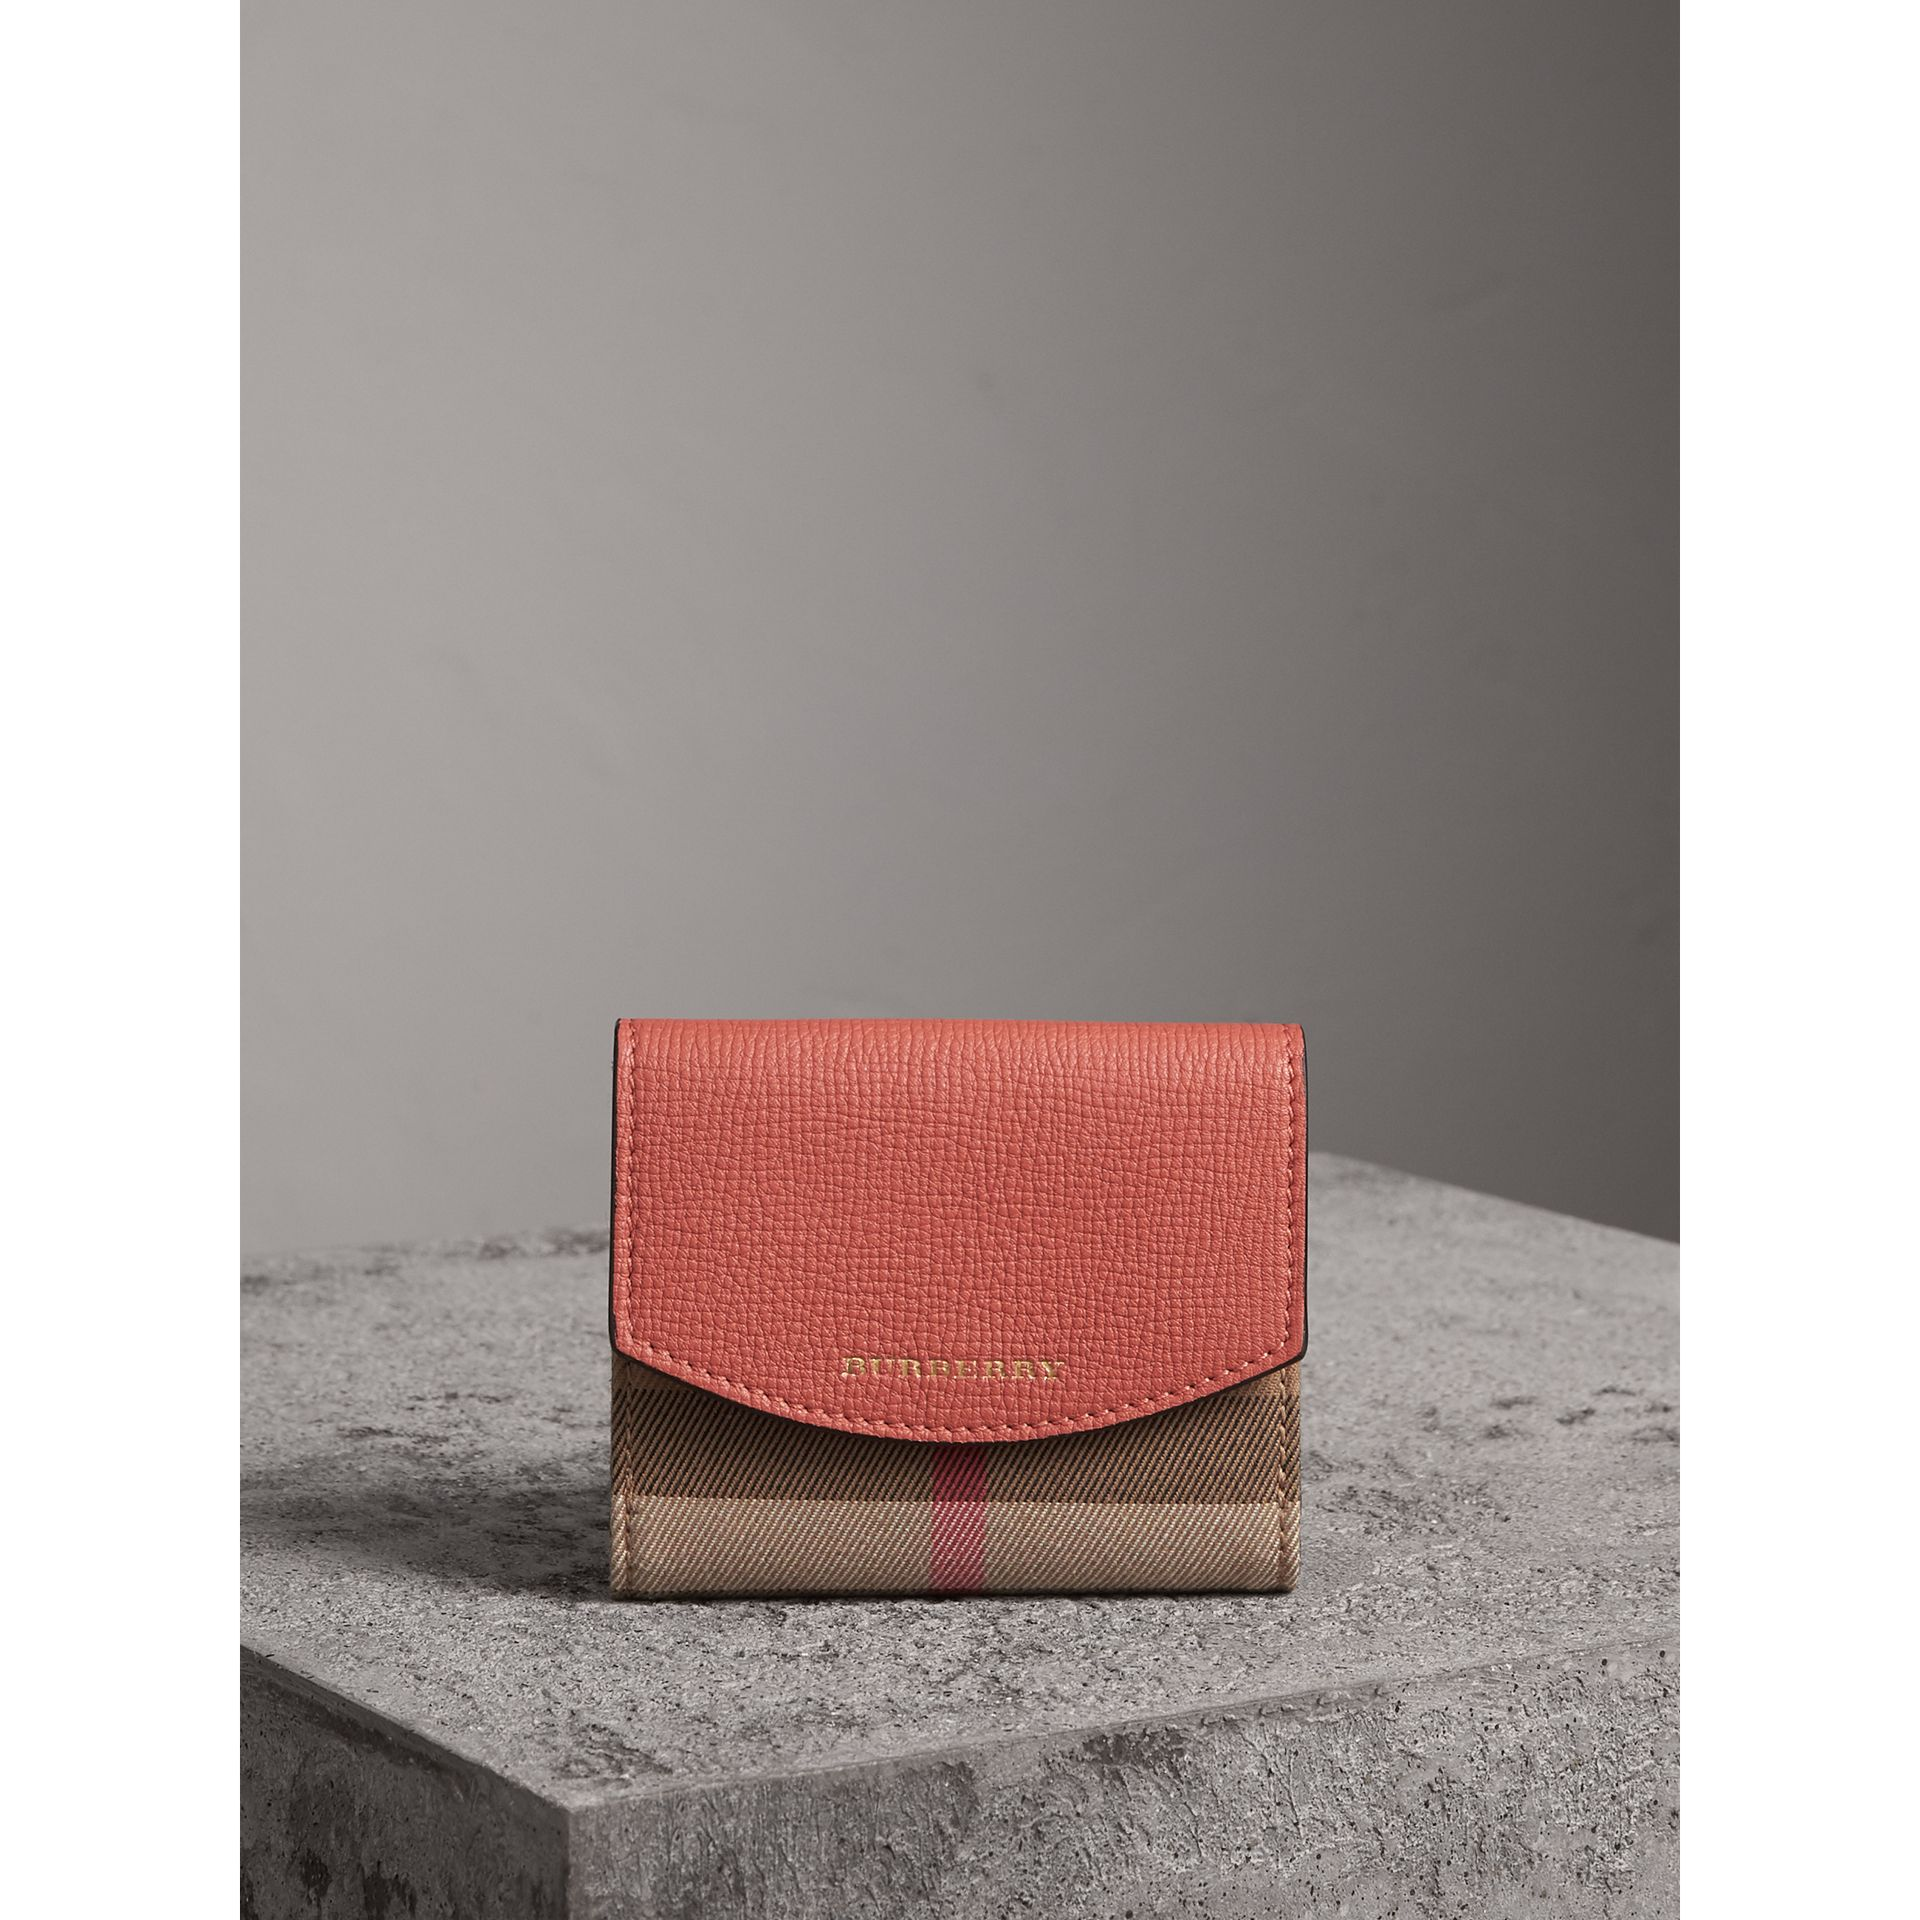 House Check and Leather Wallet in Cinnamon Red - Women | Burberry - gallery image 4